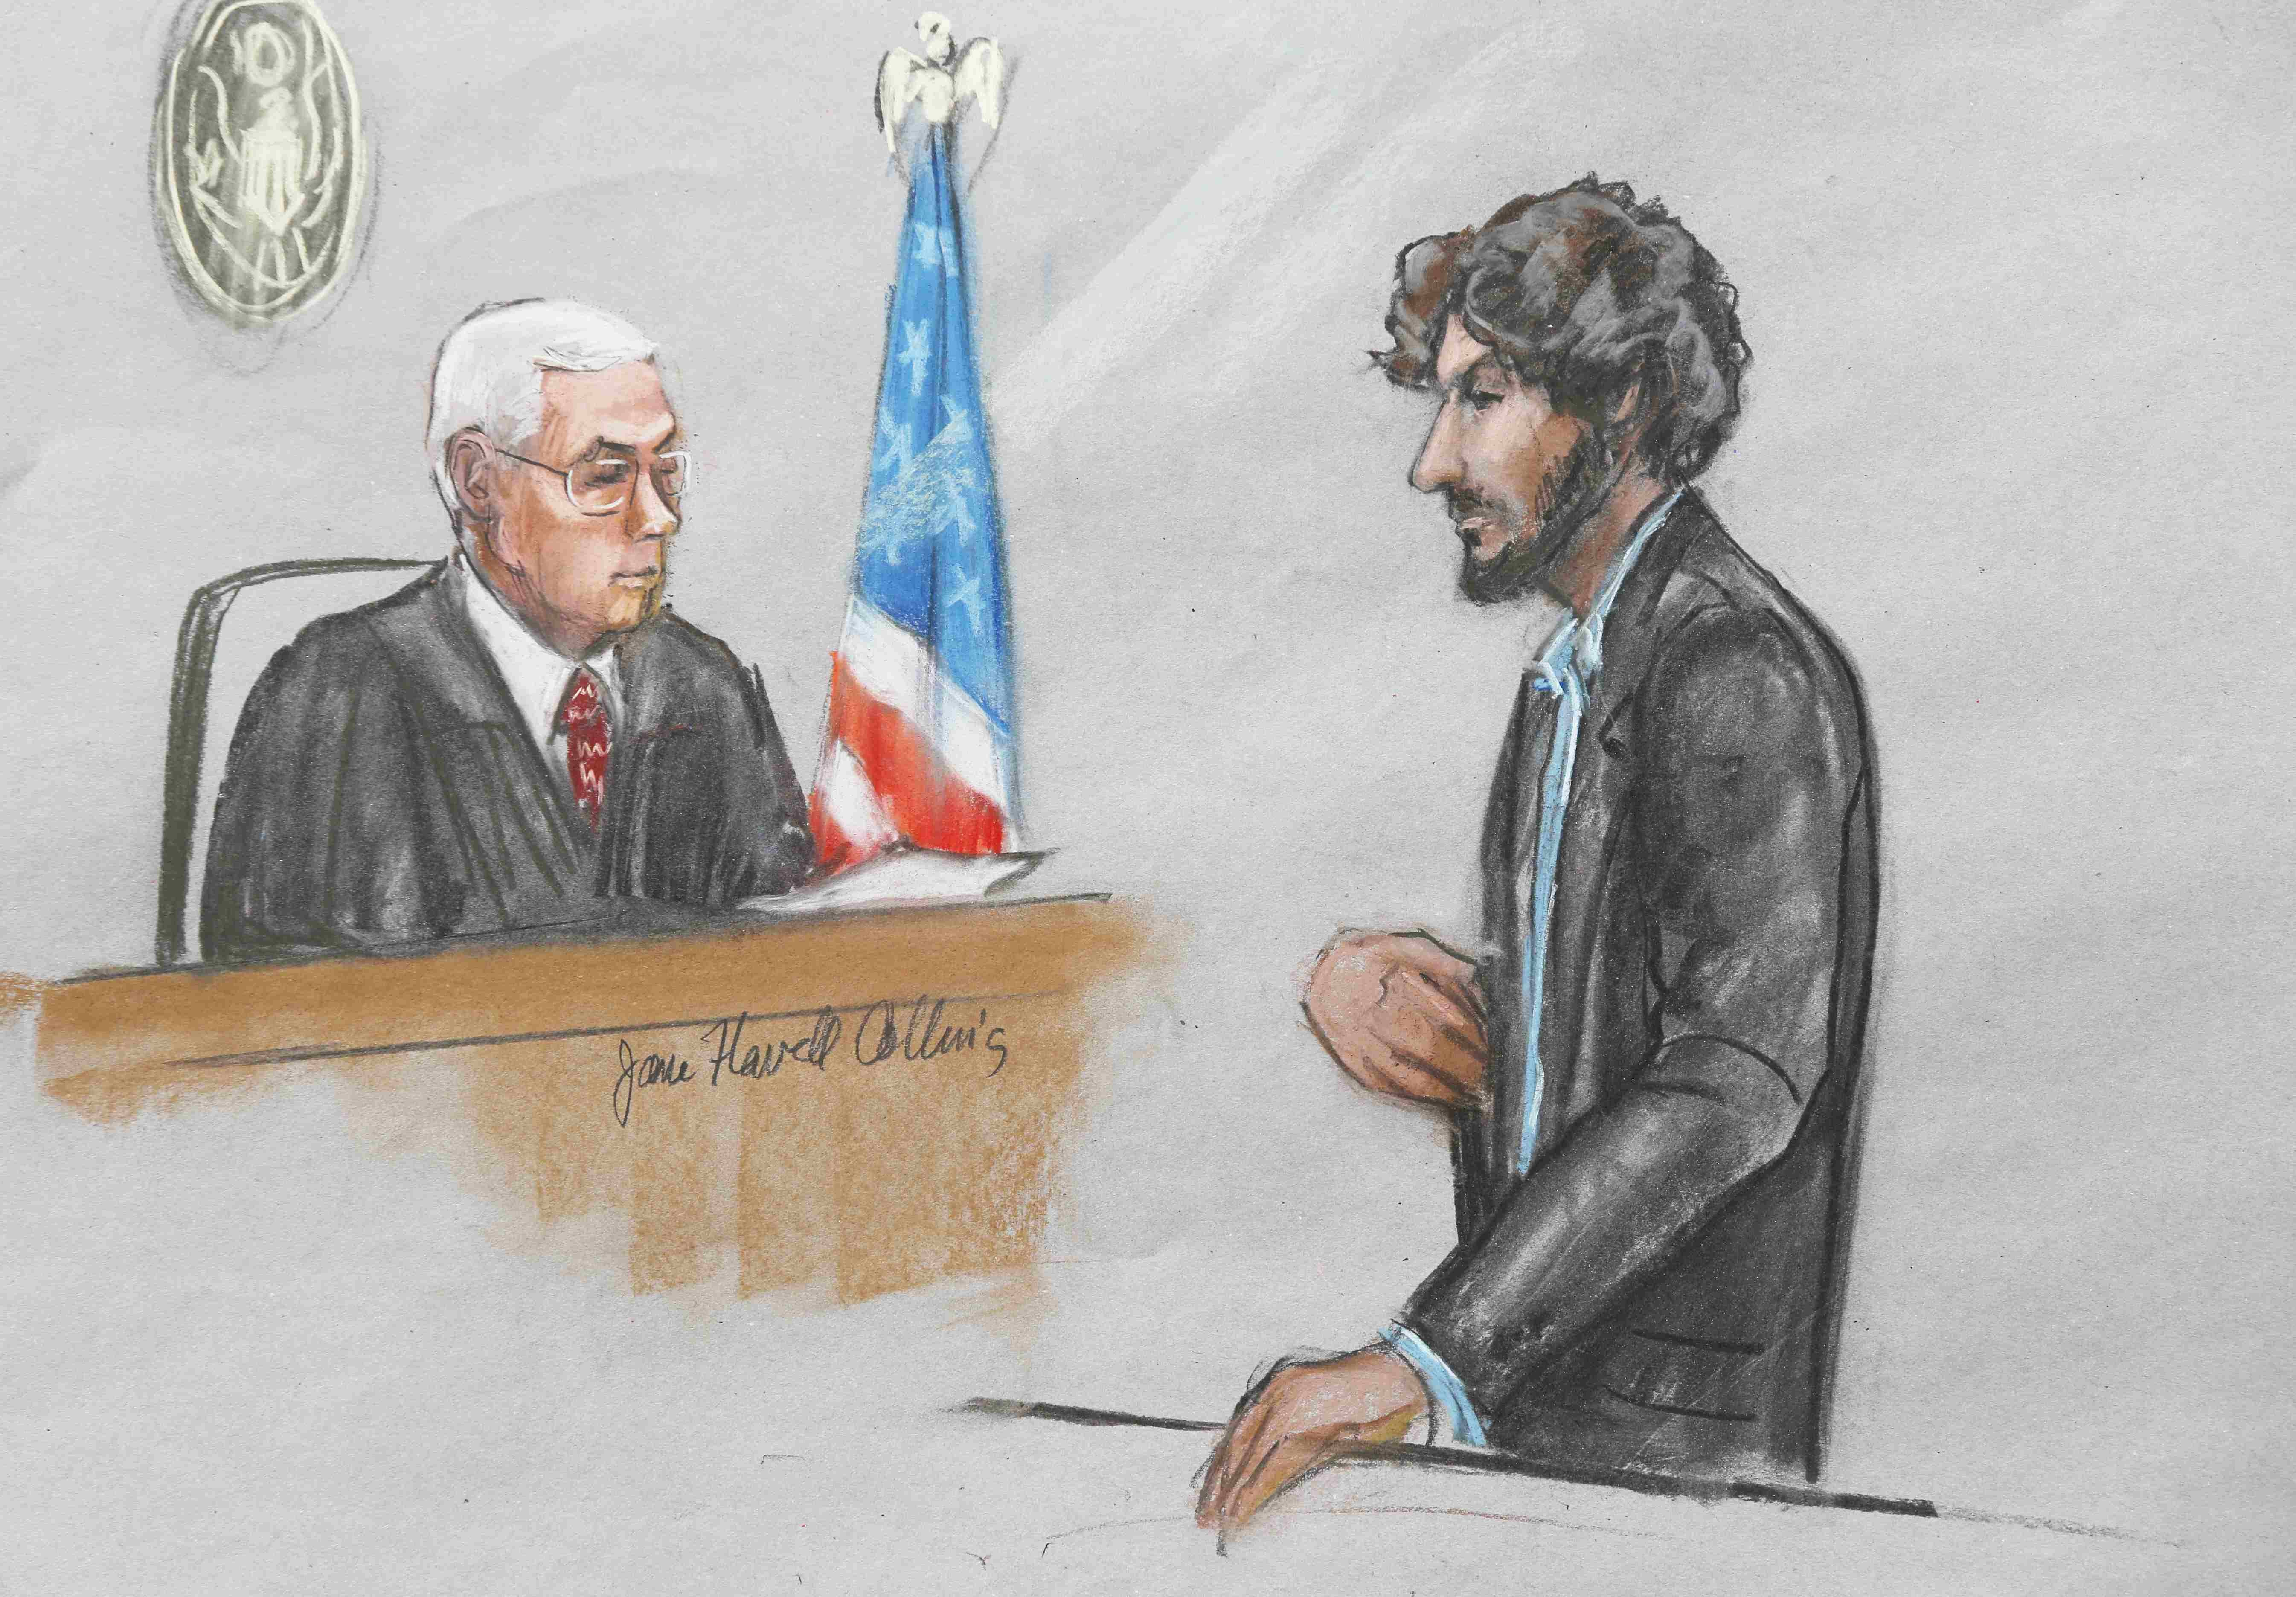 A courtroom sketch shows Boston Marathon bomber Dzhokhar Tsarnaev (R) speaking as U.S. District Judge George O'Toole looks on during his sentencing hearing in Boston, Mass. on June 24, 2015.